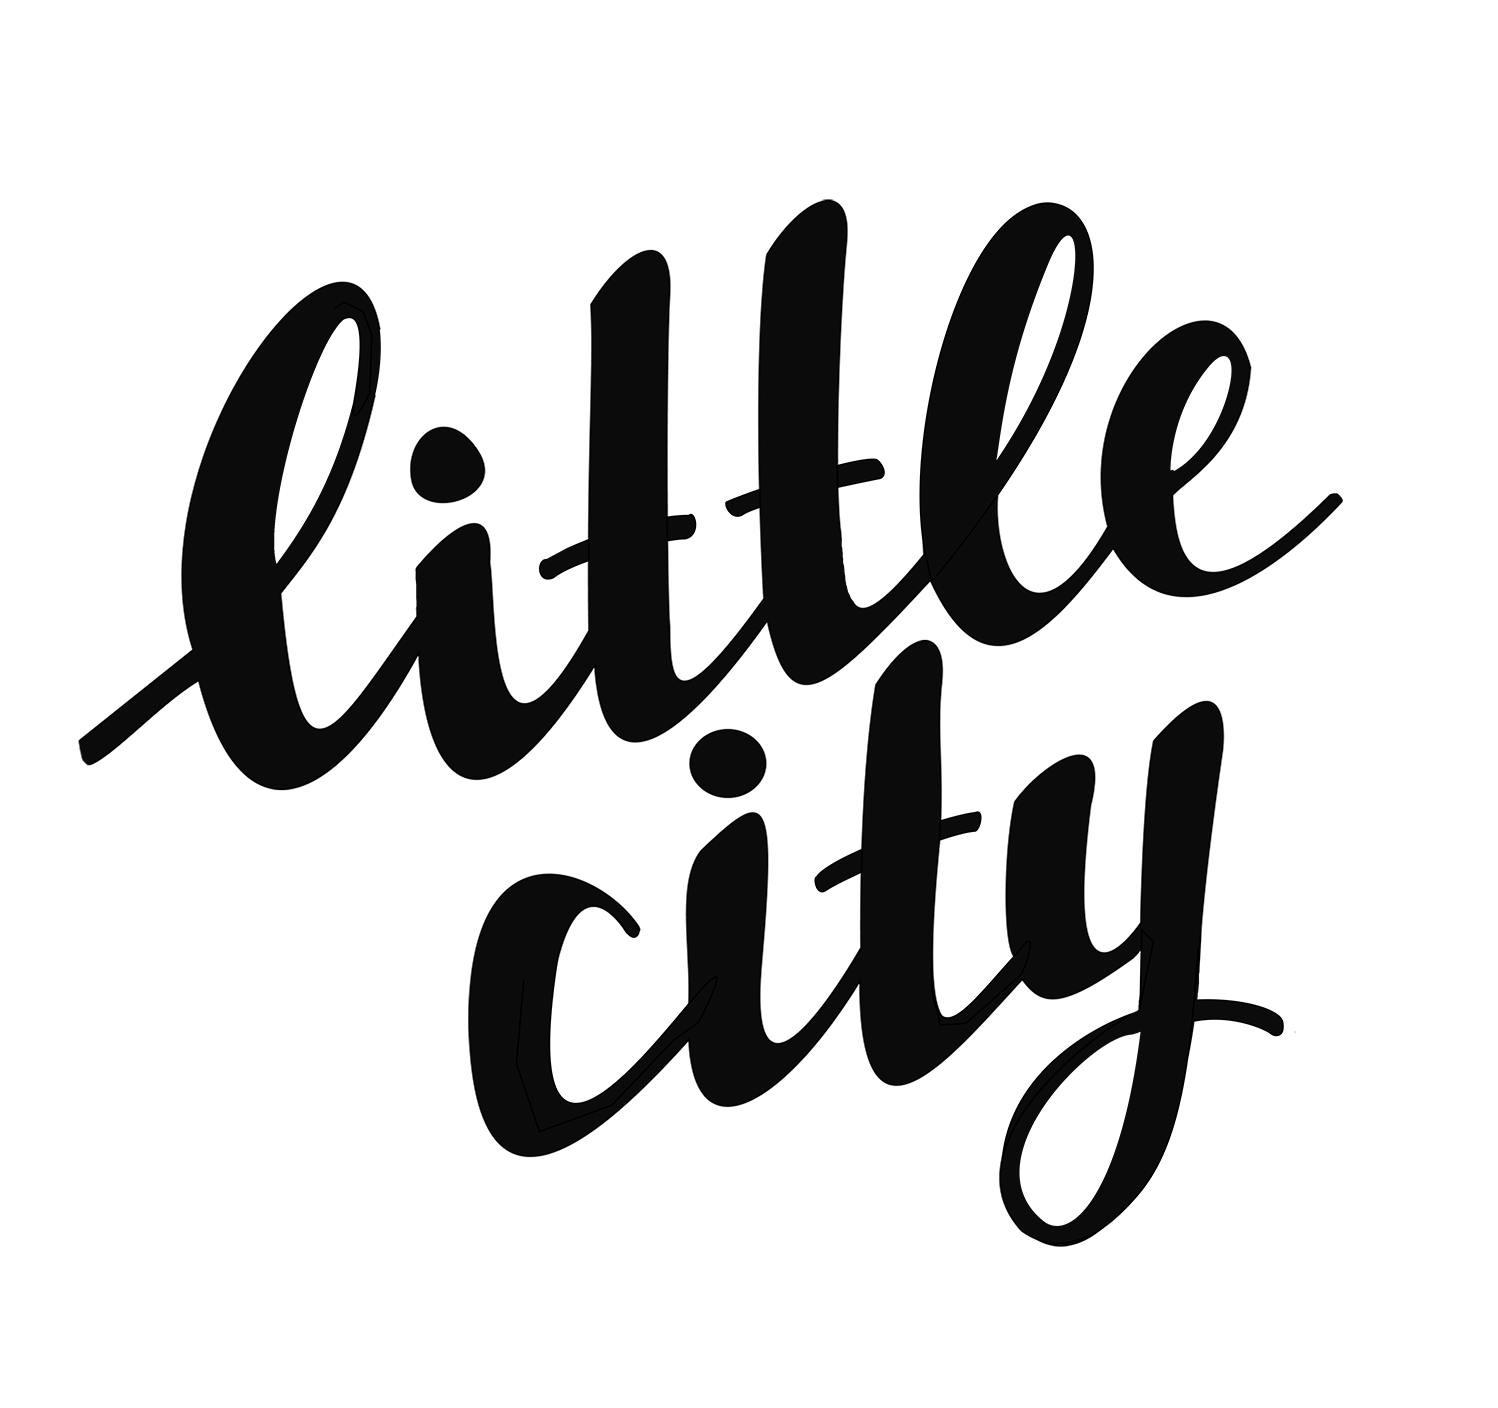 Little City Studio